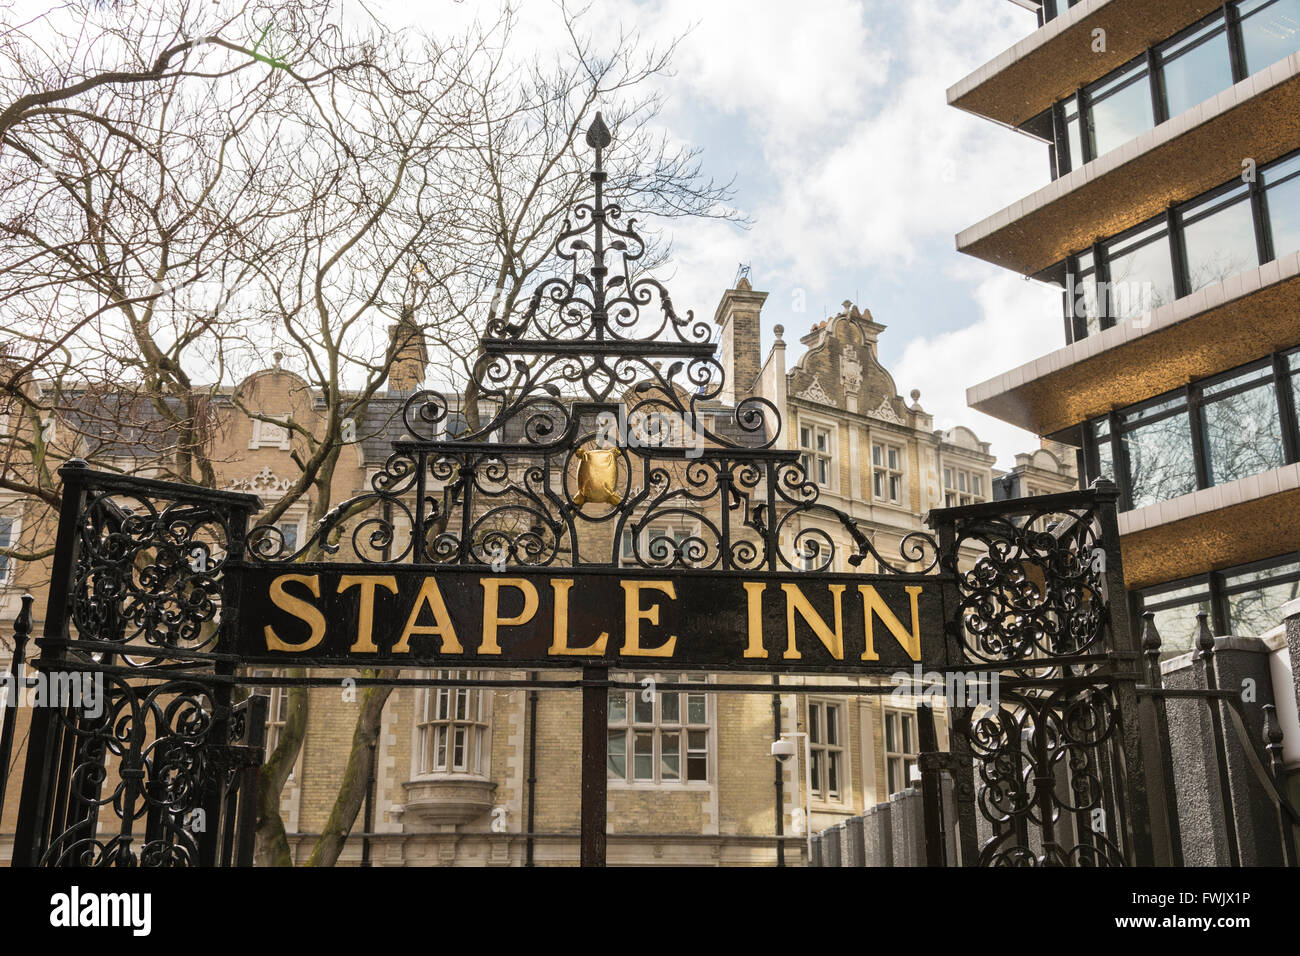 Staple Inn, High Holborn, in the City of London, England, UK - Stock Image